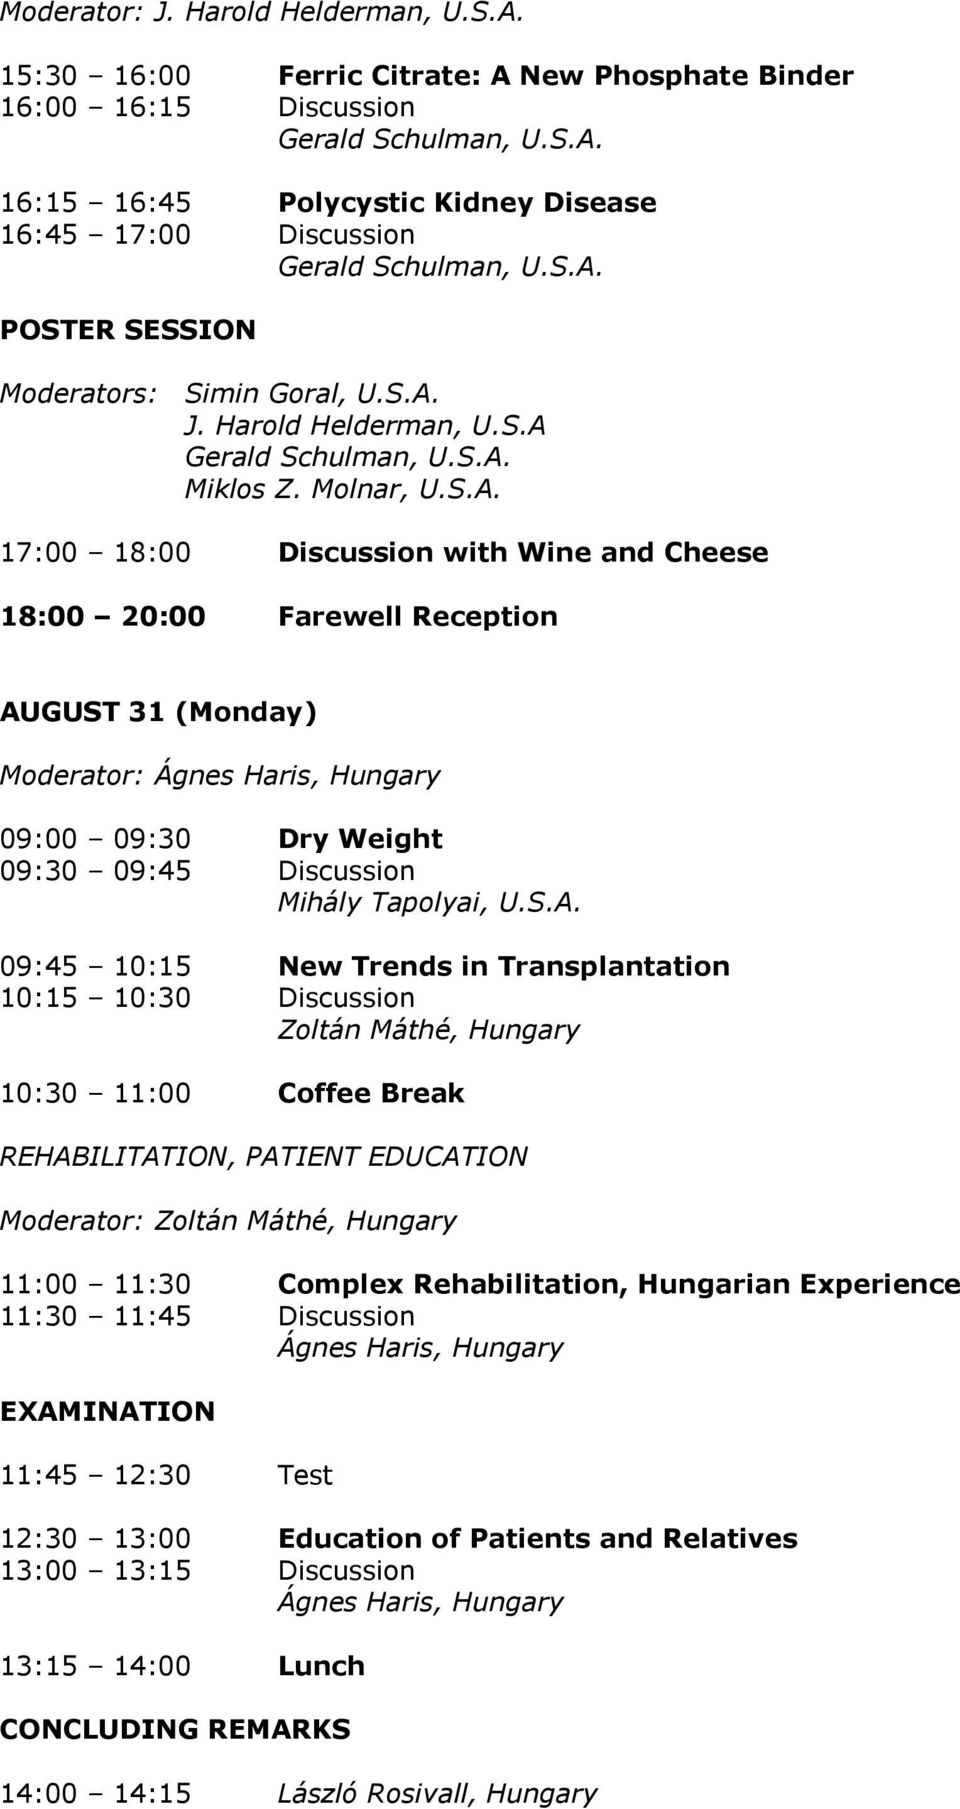 S.A. 09:45 10:15 New Trends in Transplantation 10:15 10:30 Discussion Zoltán Máthé, Hungary 10:30 11:00 Coffee Break REHABILITATION, PATIENT EDUCATION Moderator: Zoltán Máthé, Hungary 11:00 11:30